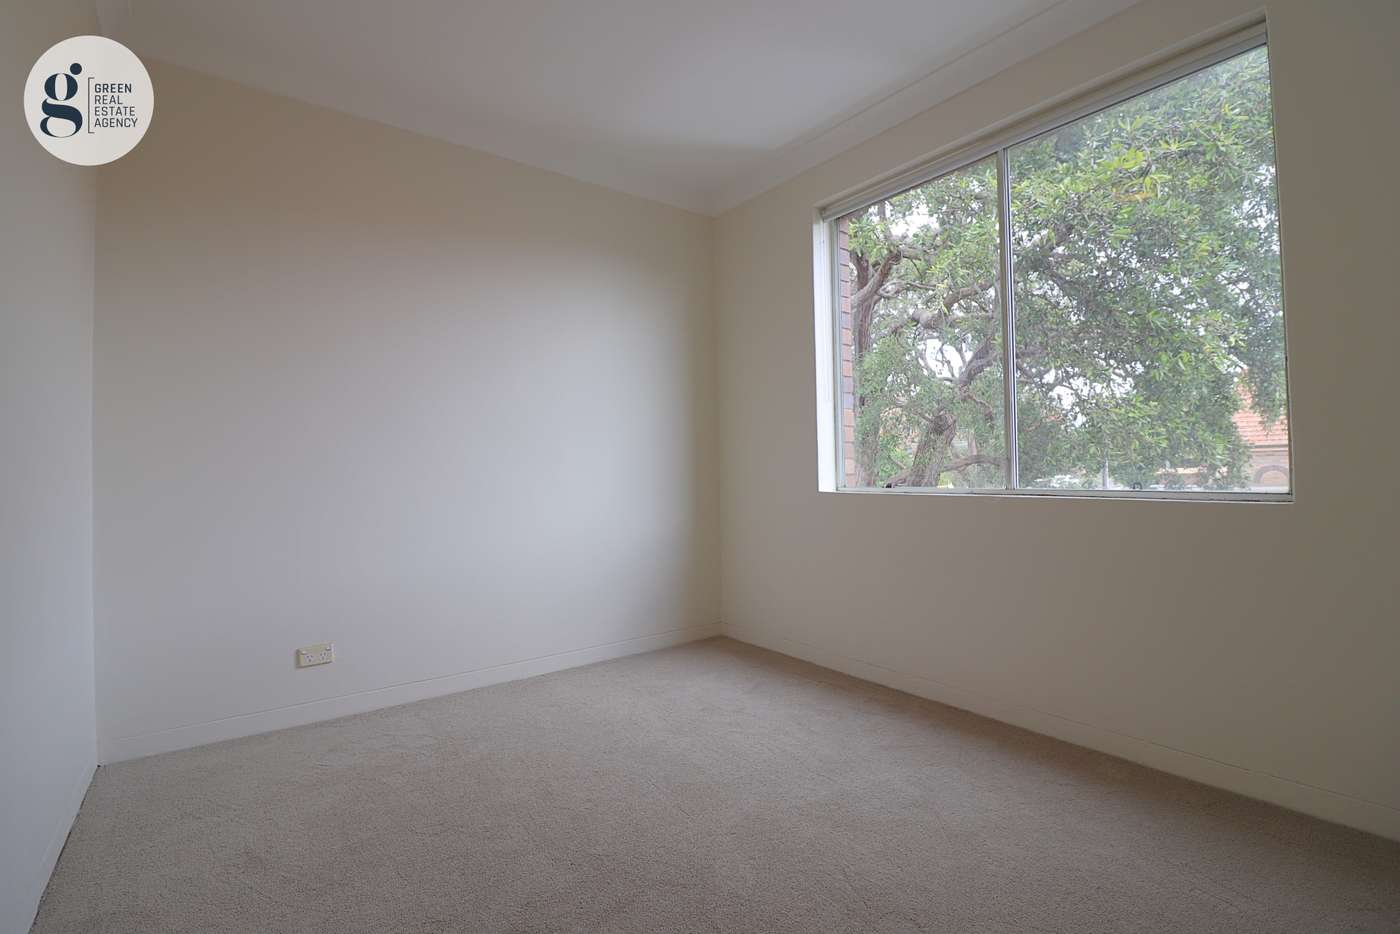 Sixth view of Homely unit listing, 7/5 Maxim Street, West Ryde NSW 2114